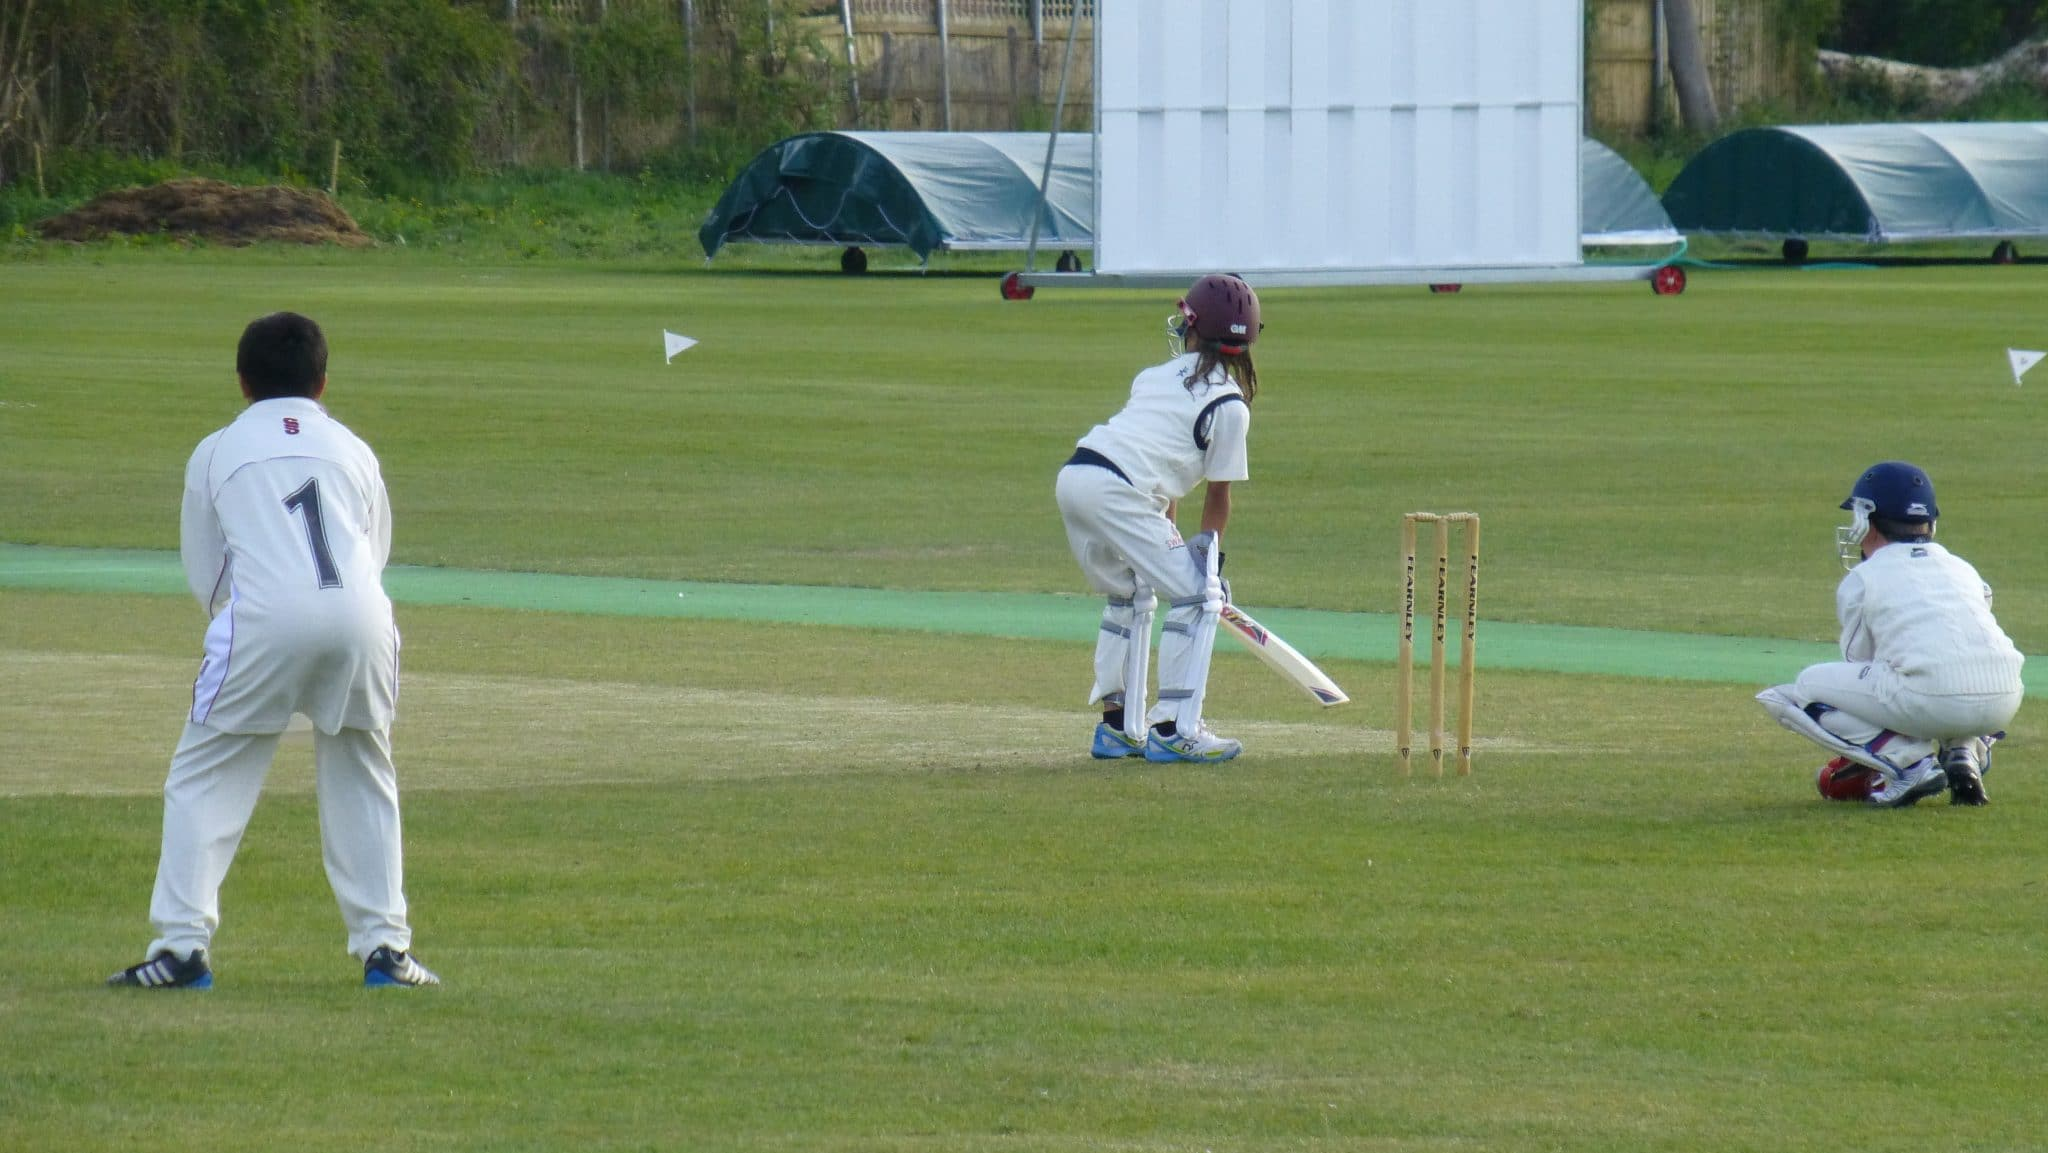 Senior cricket at South West Manchester Cricket Club